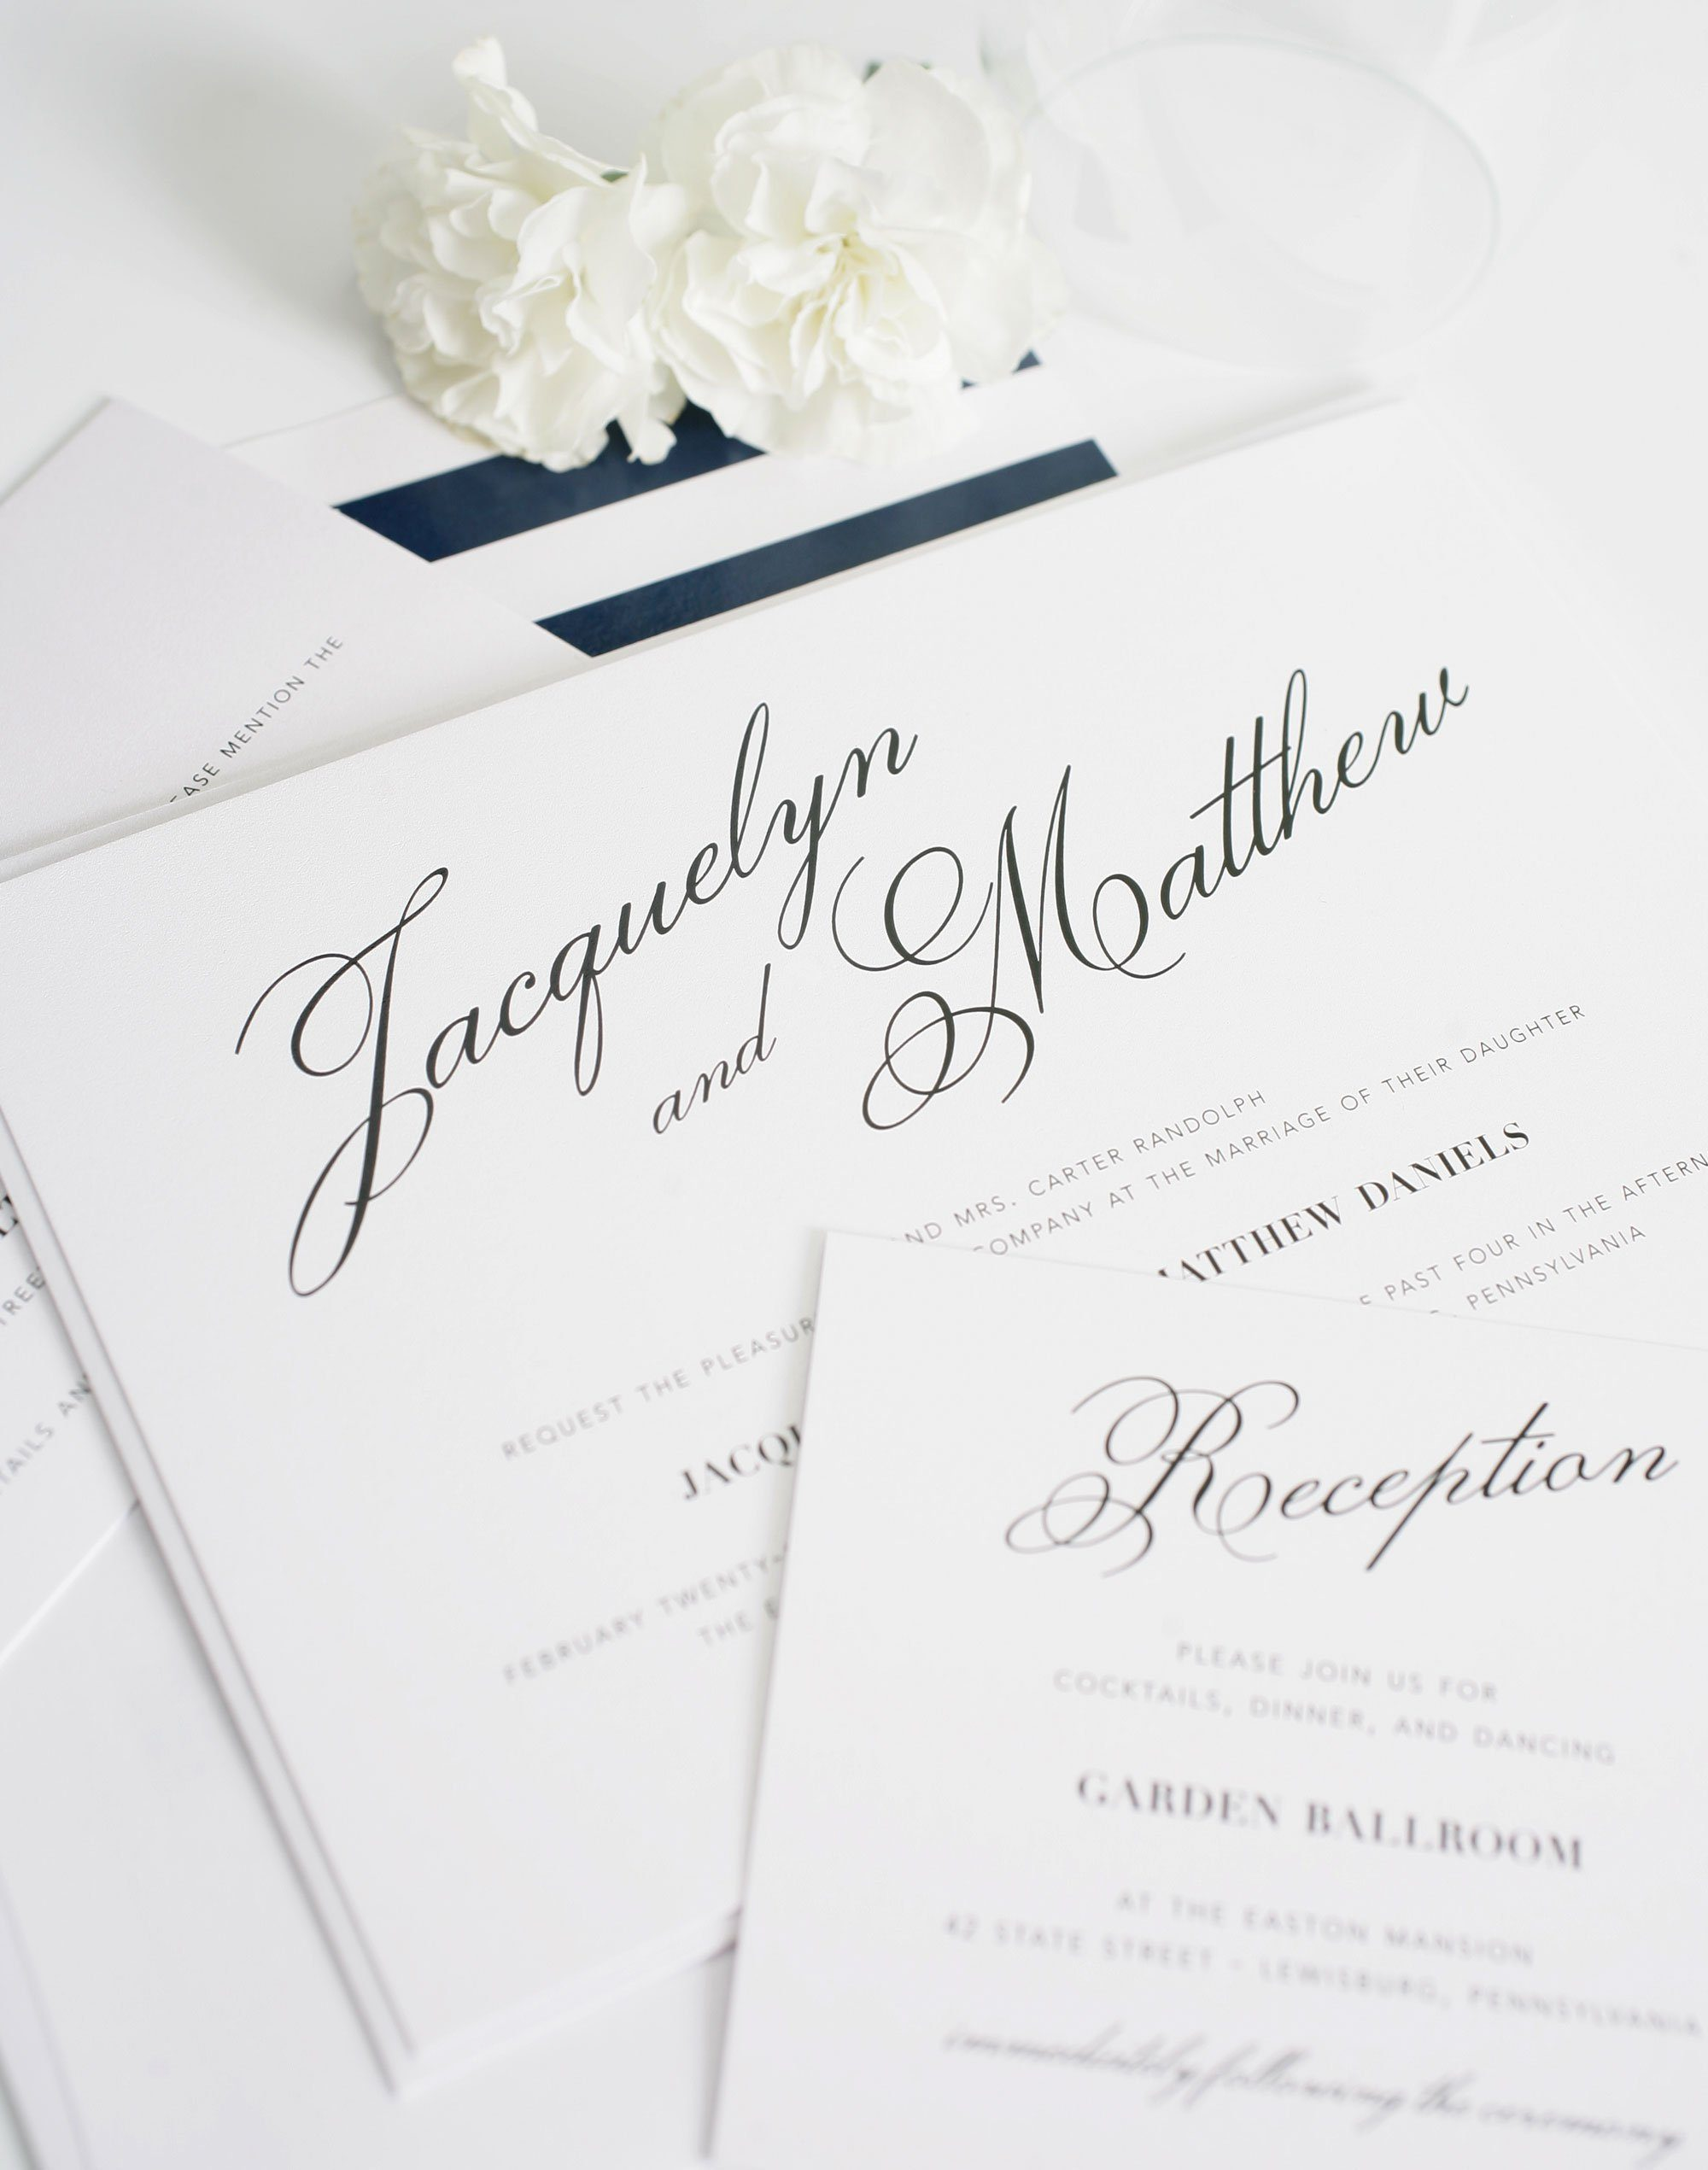 Calligraphy wedding invitations with big names